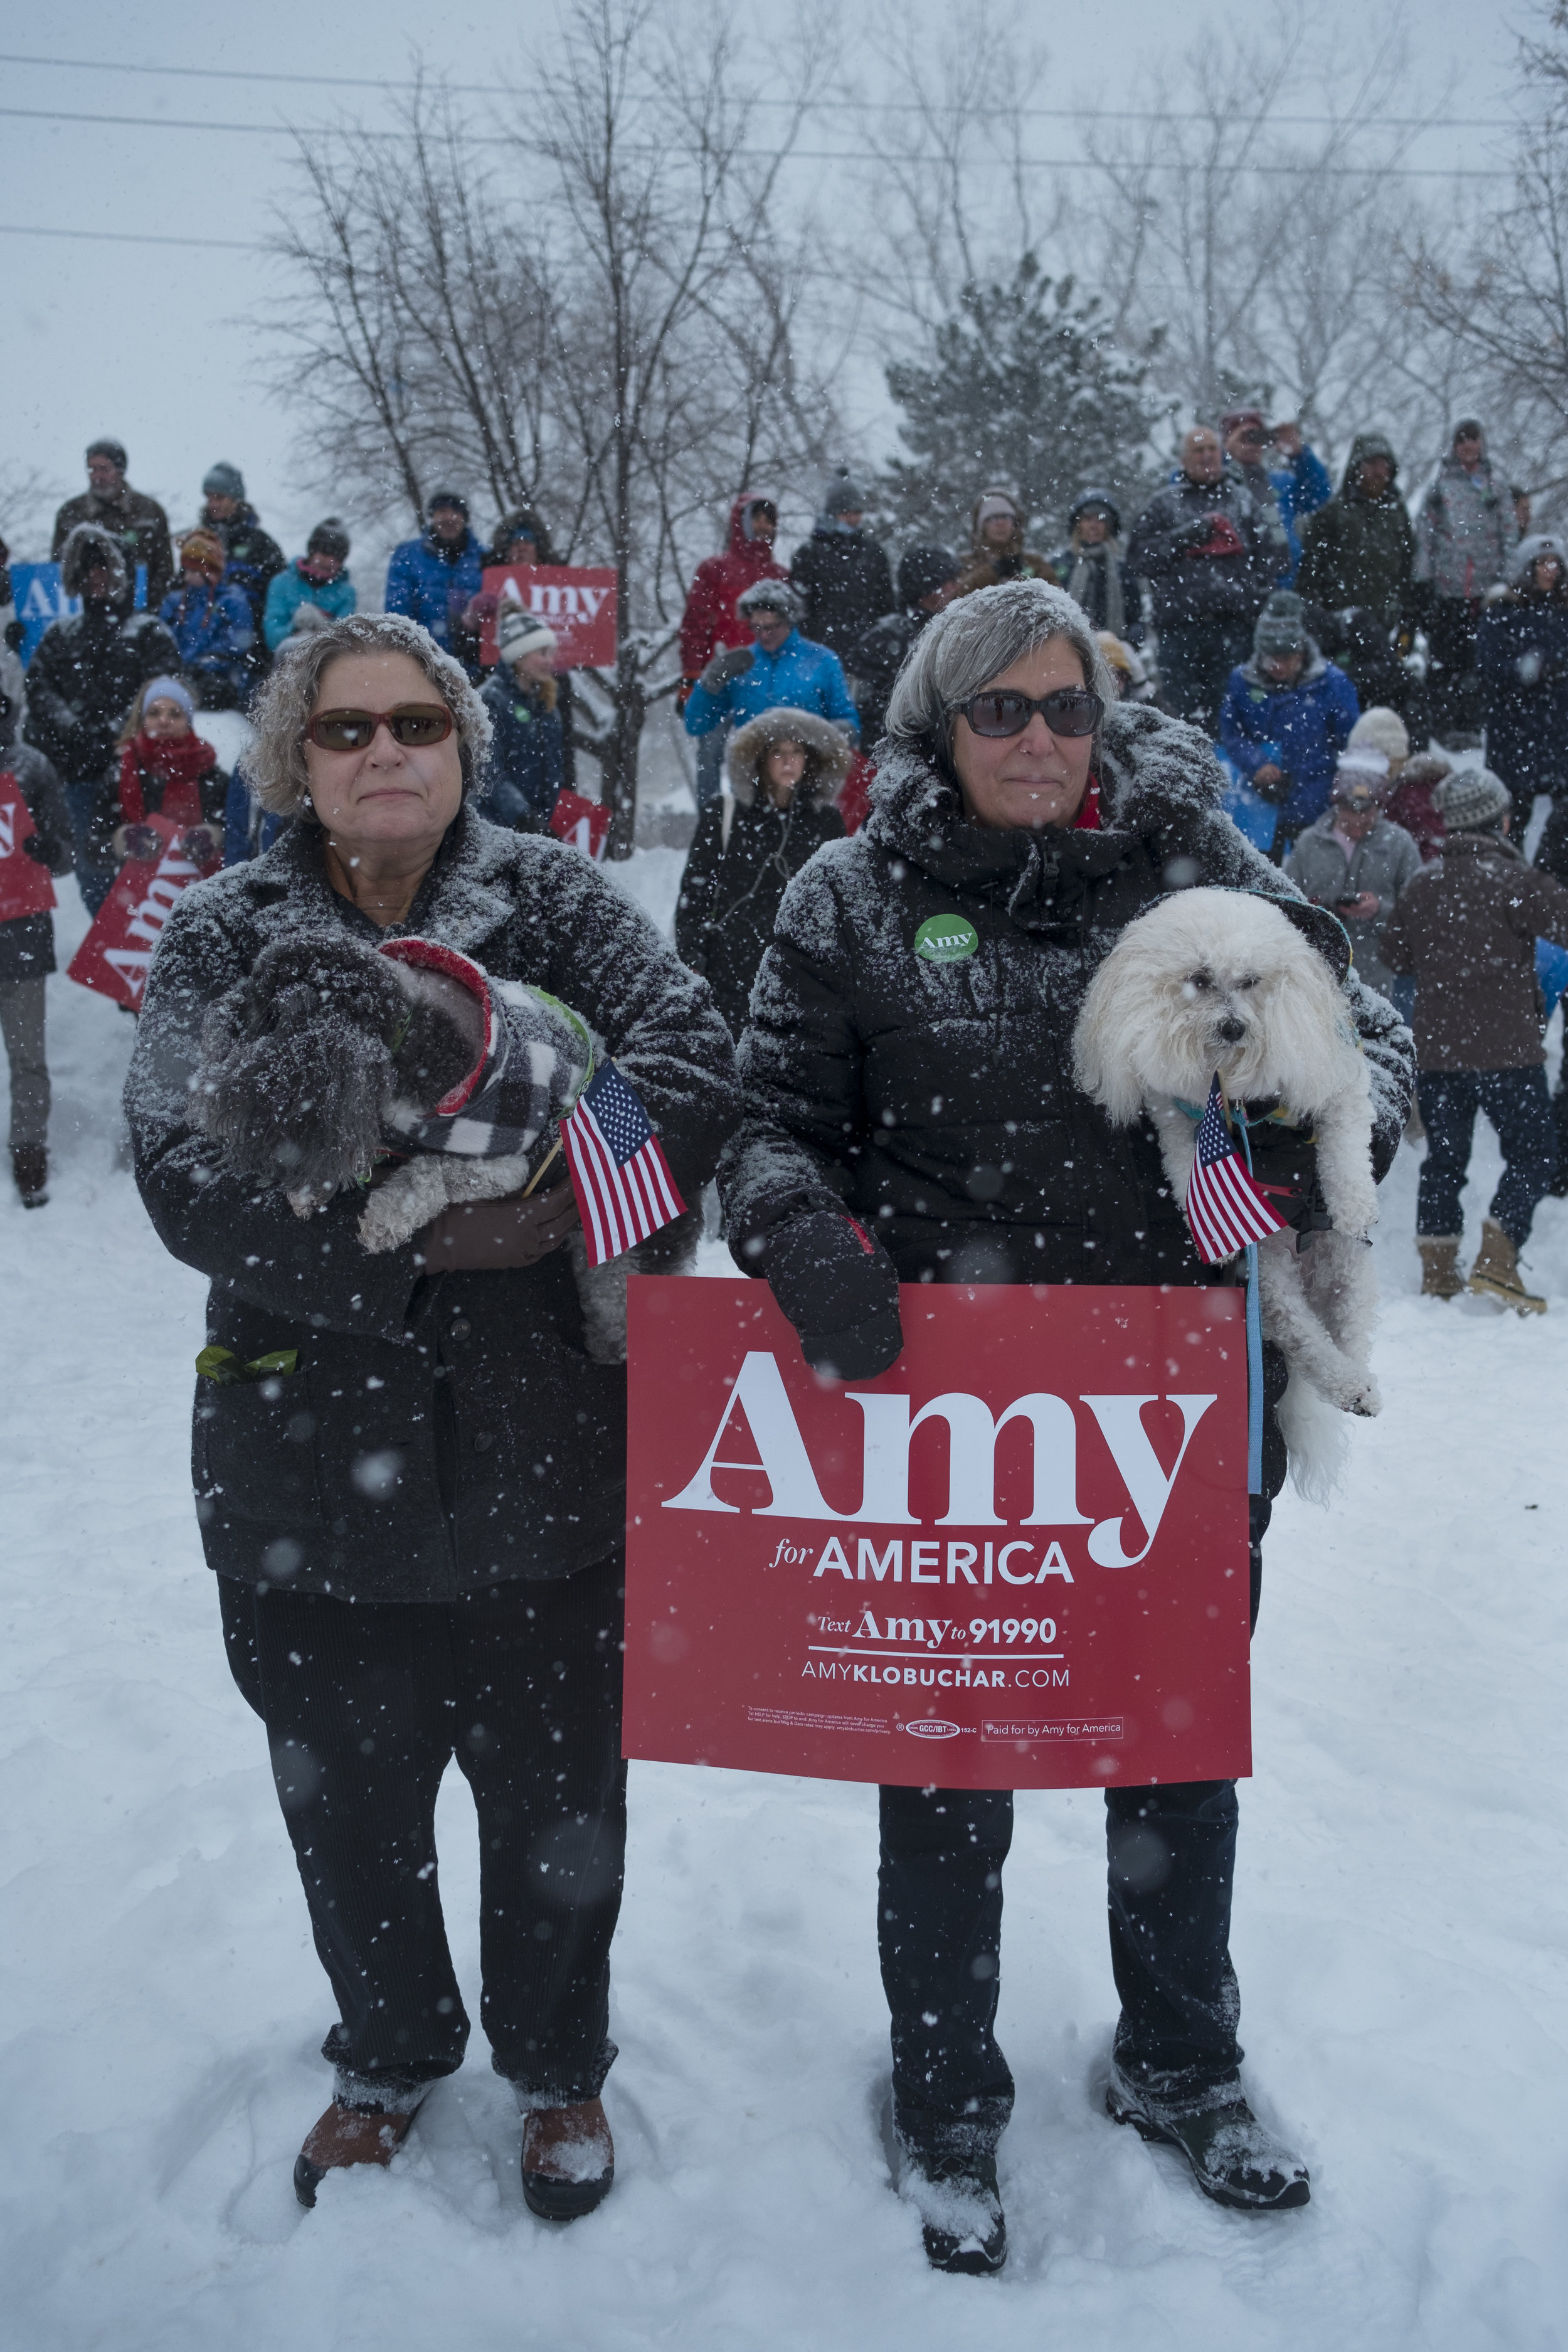 Supporters join at Boom Island Park in Minneapolis, Minnesota on Sunday, Feb. 10 to await Sen. Amy Klobuchar's, (D-Minn.), announcement in running for president in 2020. Those is favor, and those in opposition, gathered amid freezing temperatures and heavy snowfall. (Photo by Brooklynn Kascel)